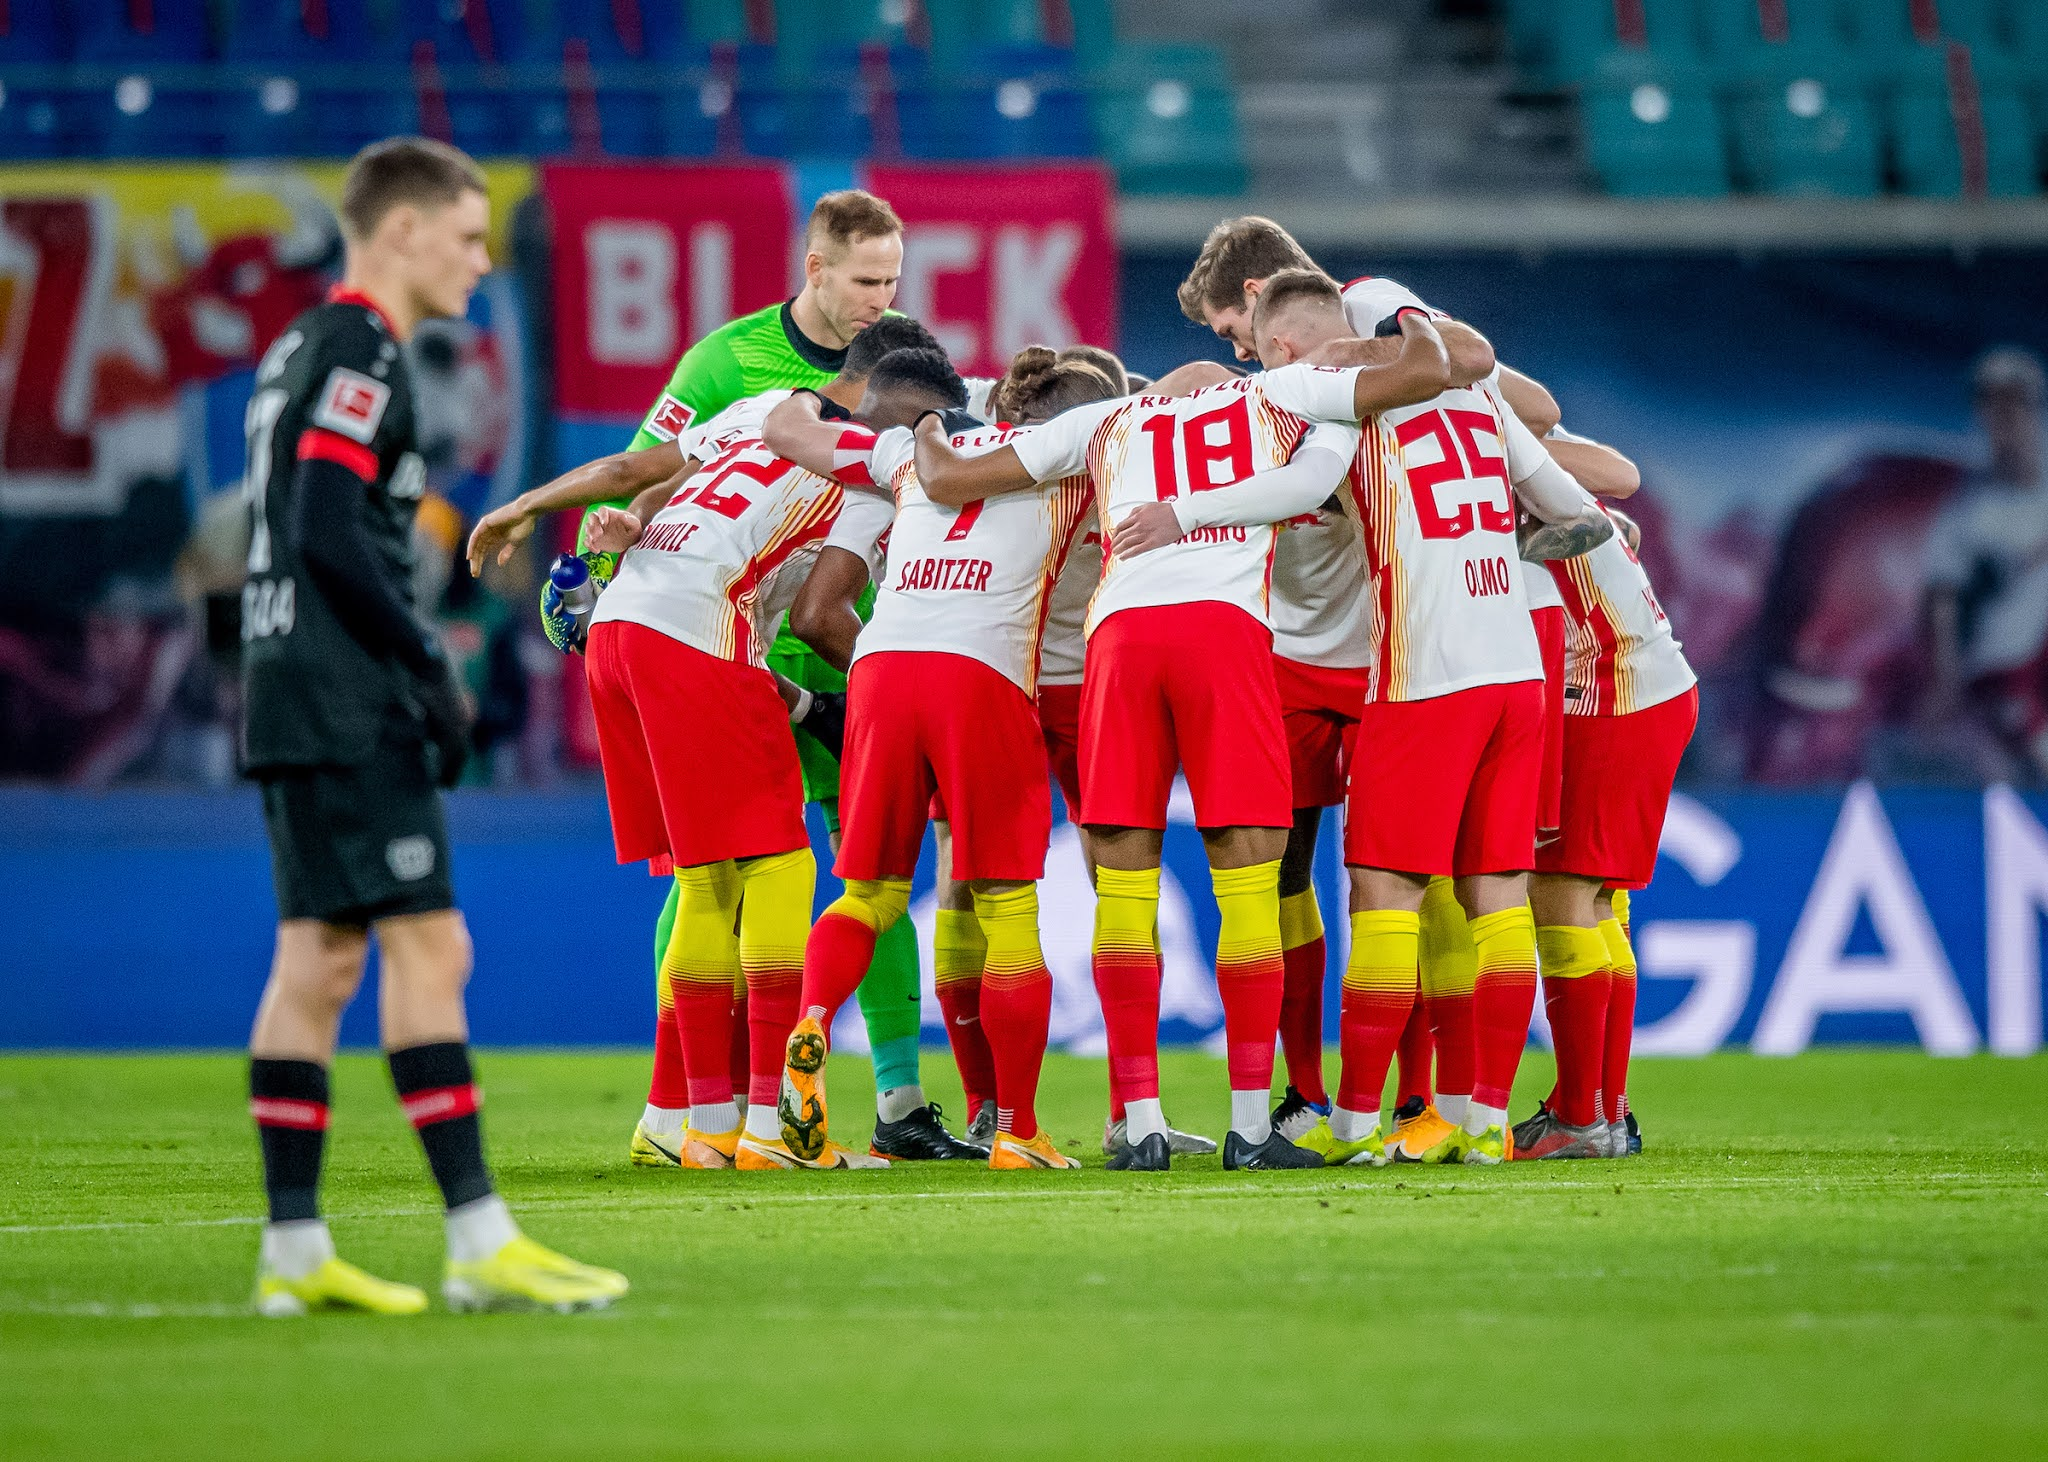 RB Leipzig travel to Gelsenkirchen to lock horns with Schalke with the hopes of gaining ground on the leaders